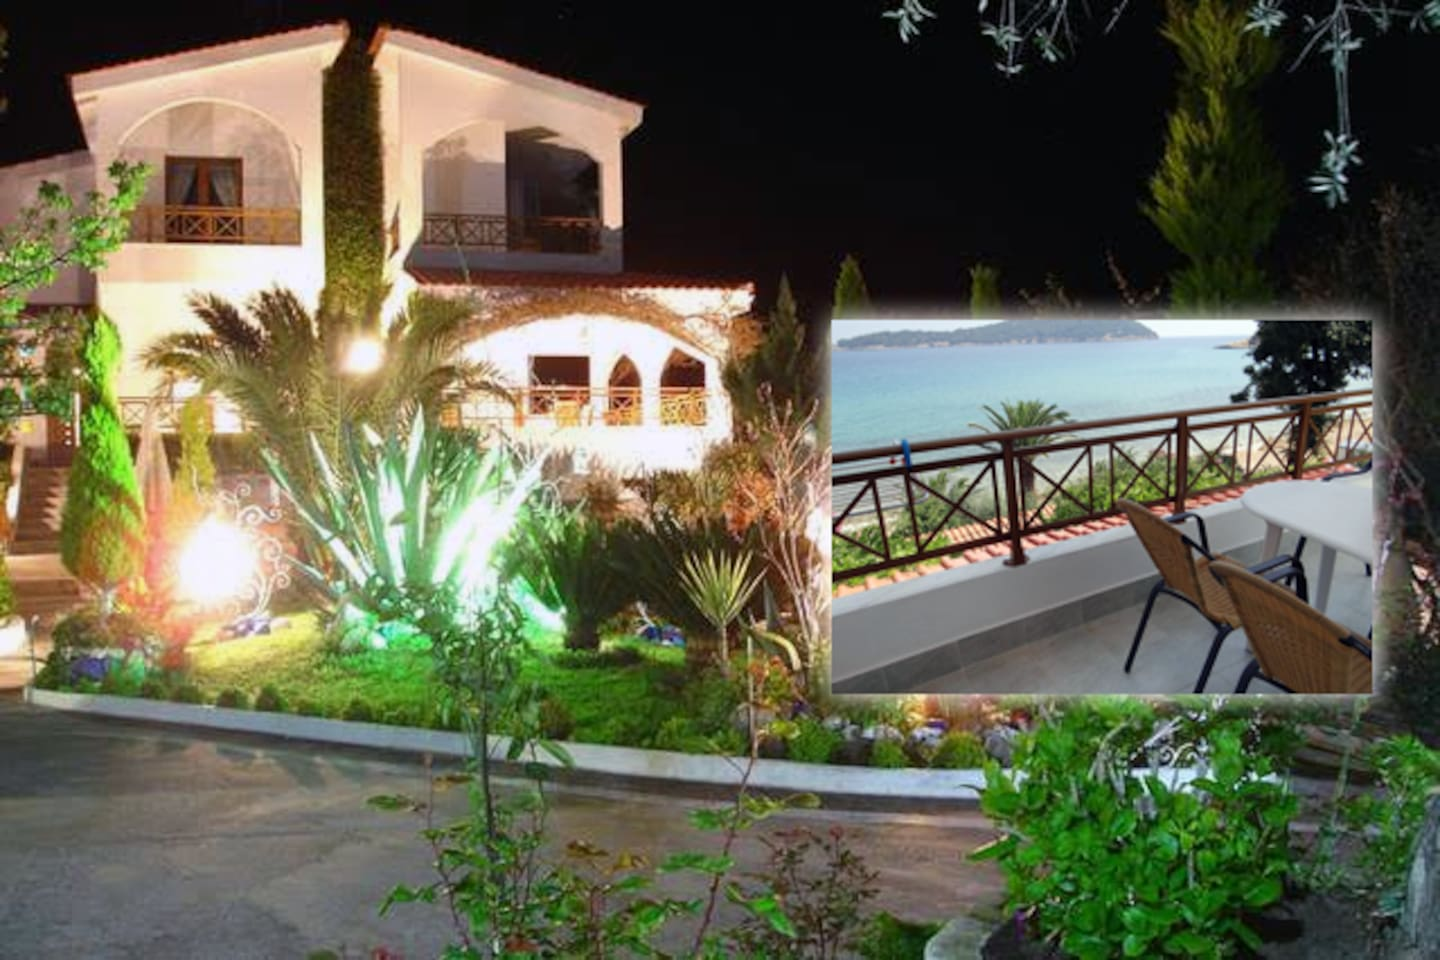 Villa Frosso garden by night and Apartment 3 sea view balcony